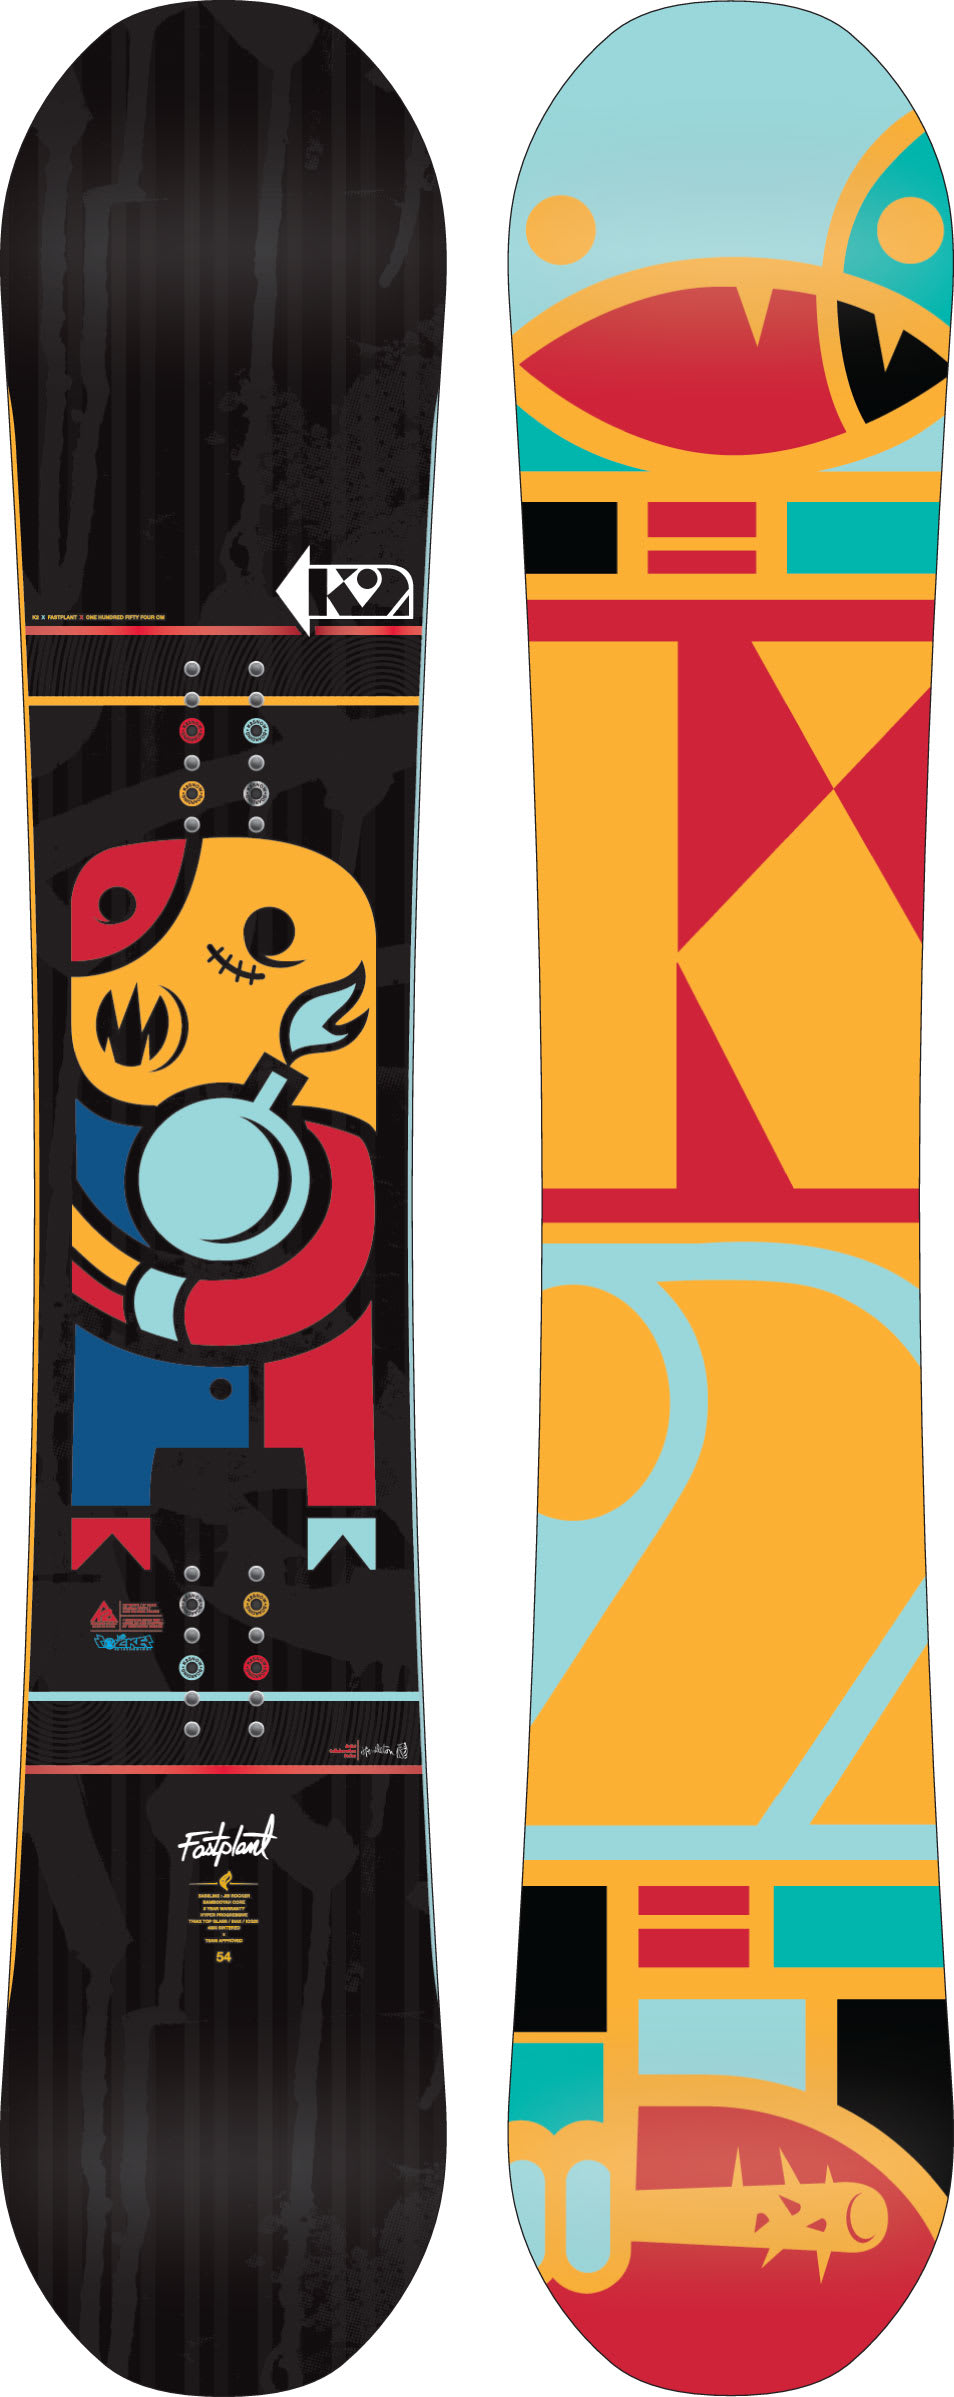 Shop for K2 Fastplant Snowboard 154 - Men's